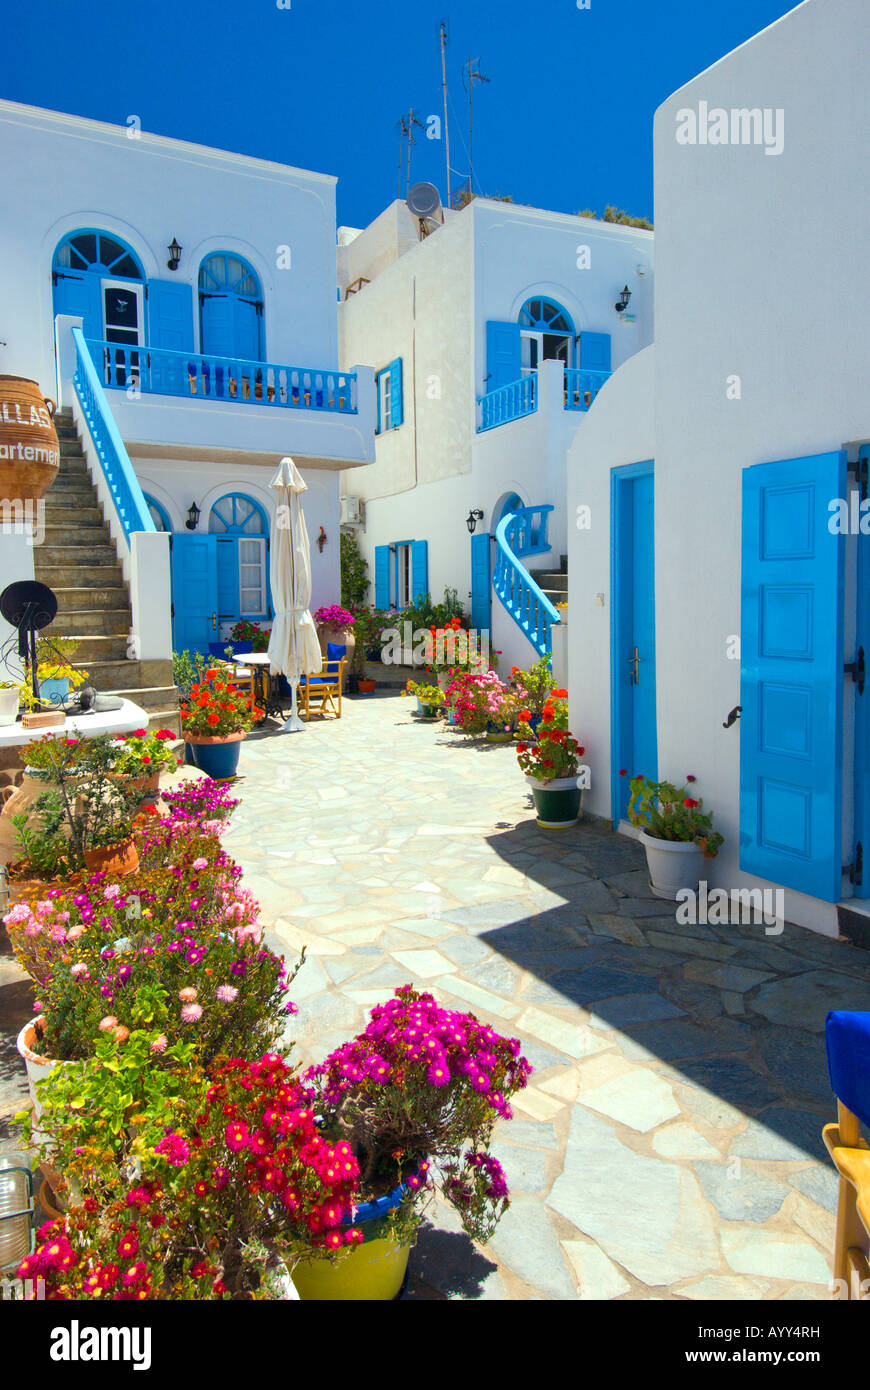 Santorini Patio Furniture: Apartment Patio And Pool Decor In The Village Of Fira On